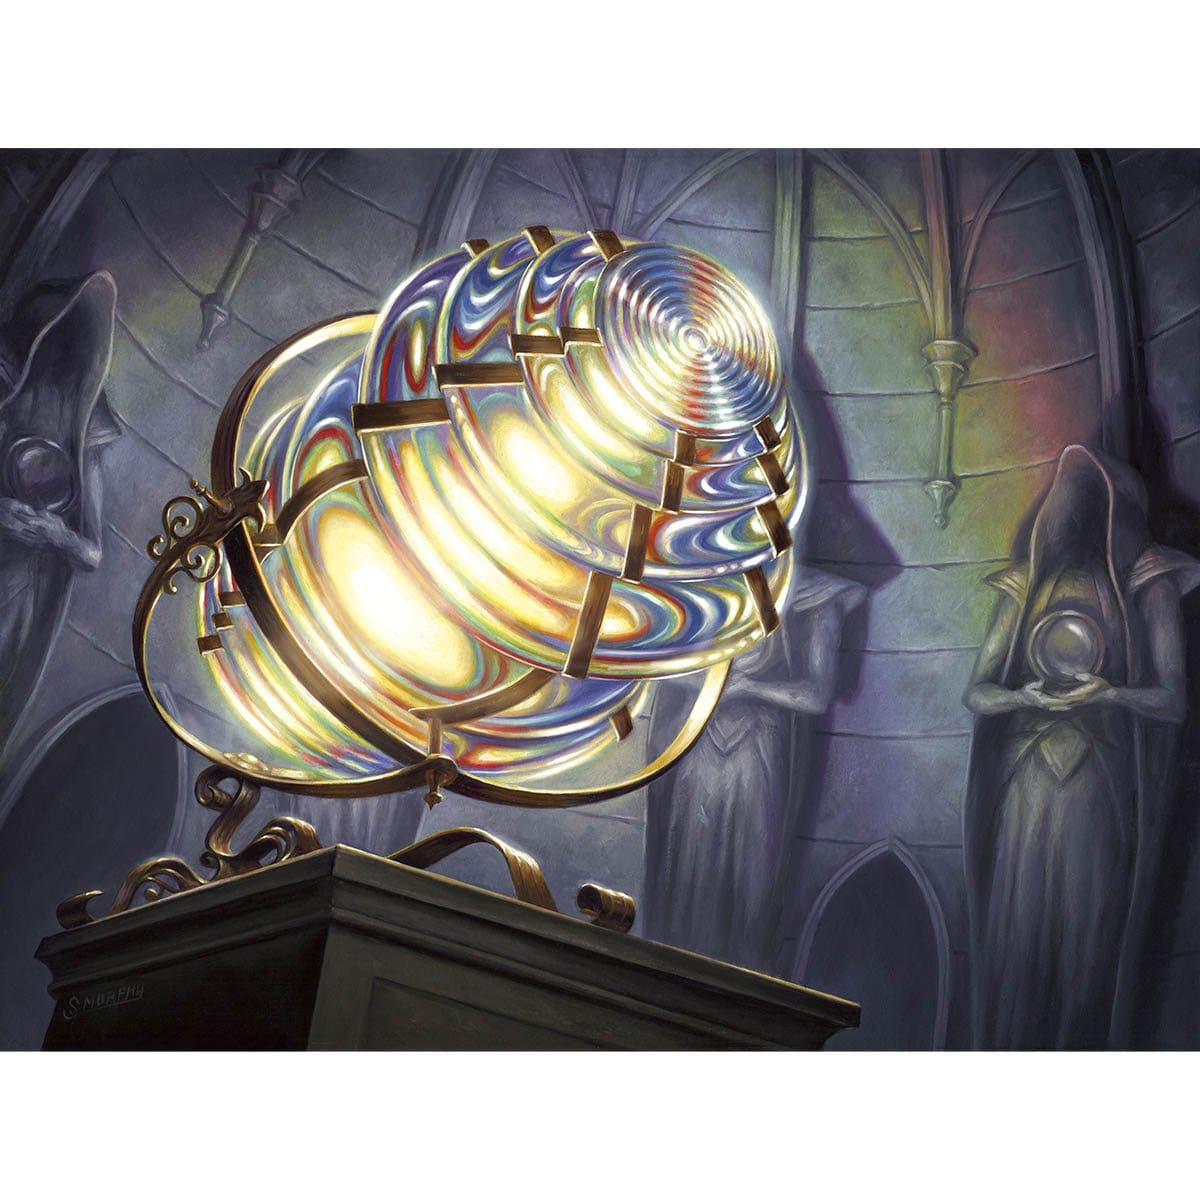 Prismatic Lens Print - Print - Original Magic Art - Accessories for Magic the Gathering and other card games